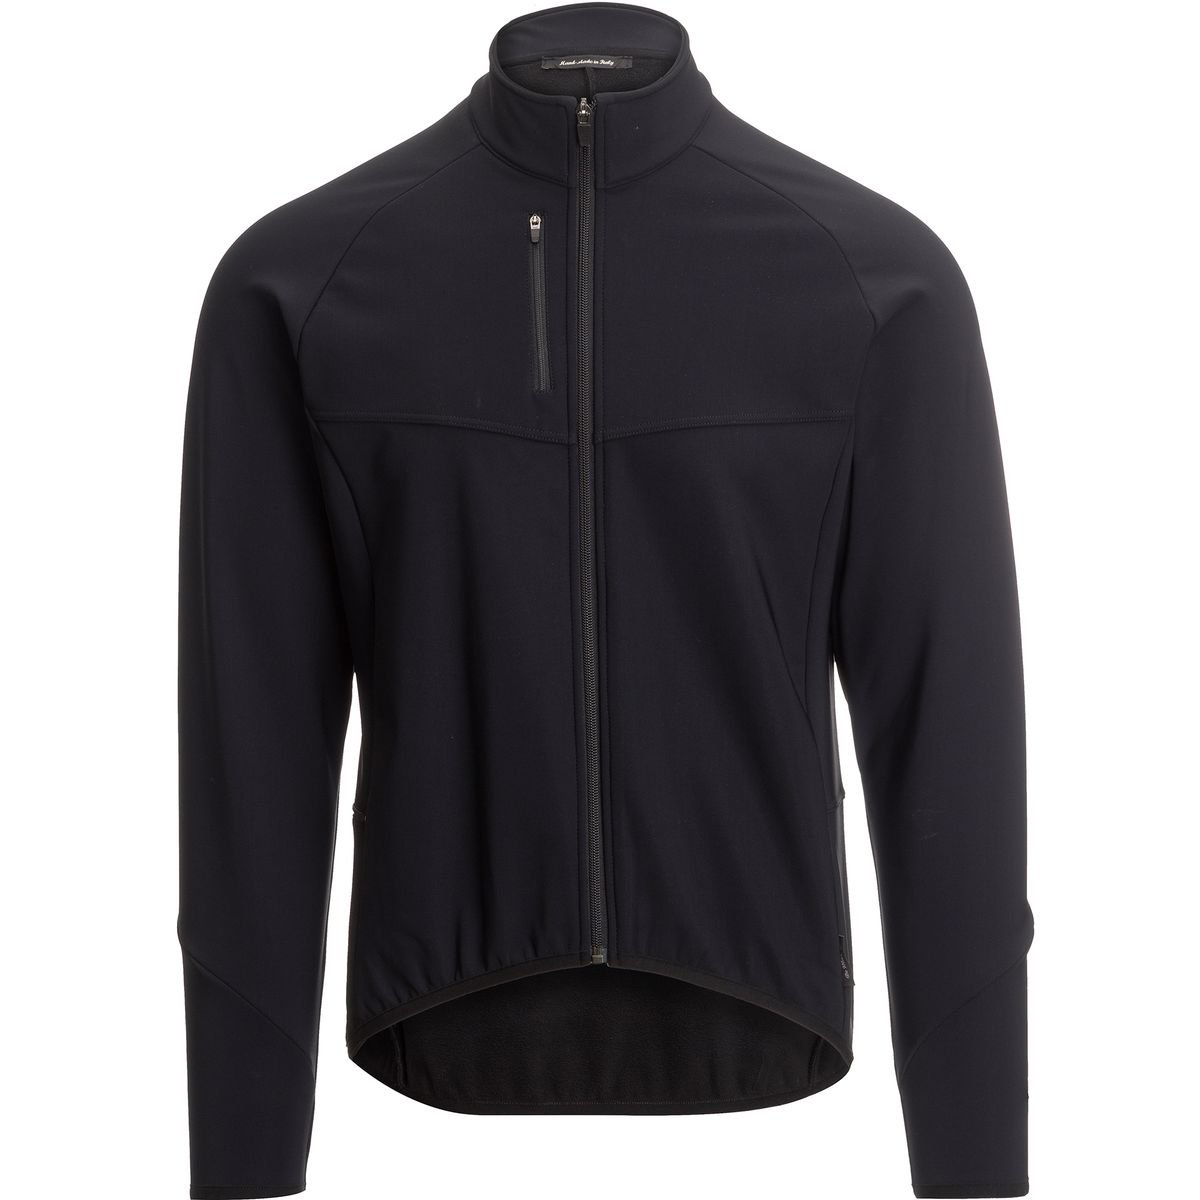 De Marchi Softshell Jacket – Men 's B0767G92W4 X-Large|ブラック/ネロ(Black/Nero) ブラック/ネロ(Black/Nero) X-Large